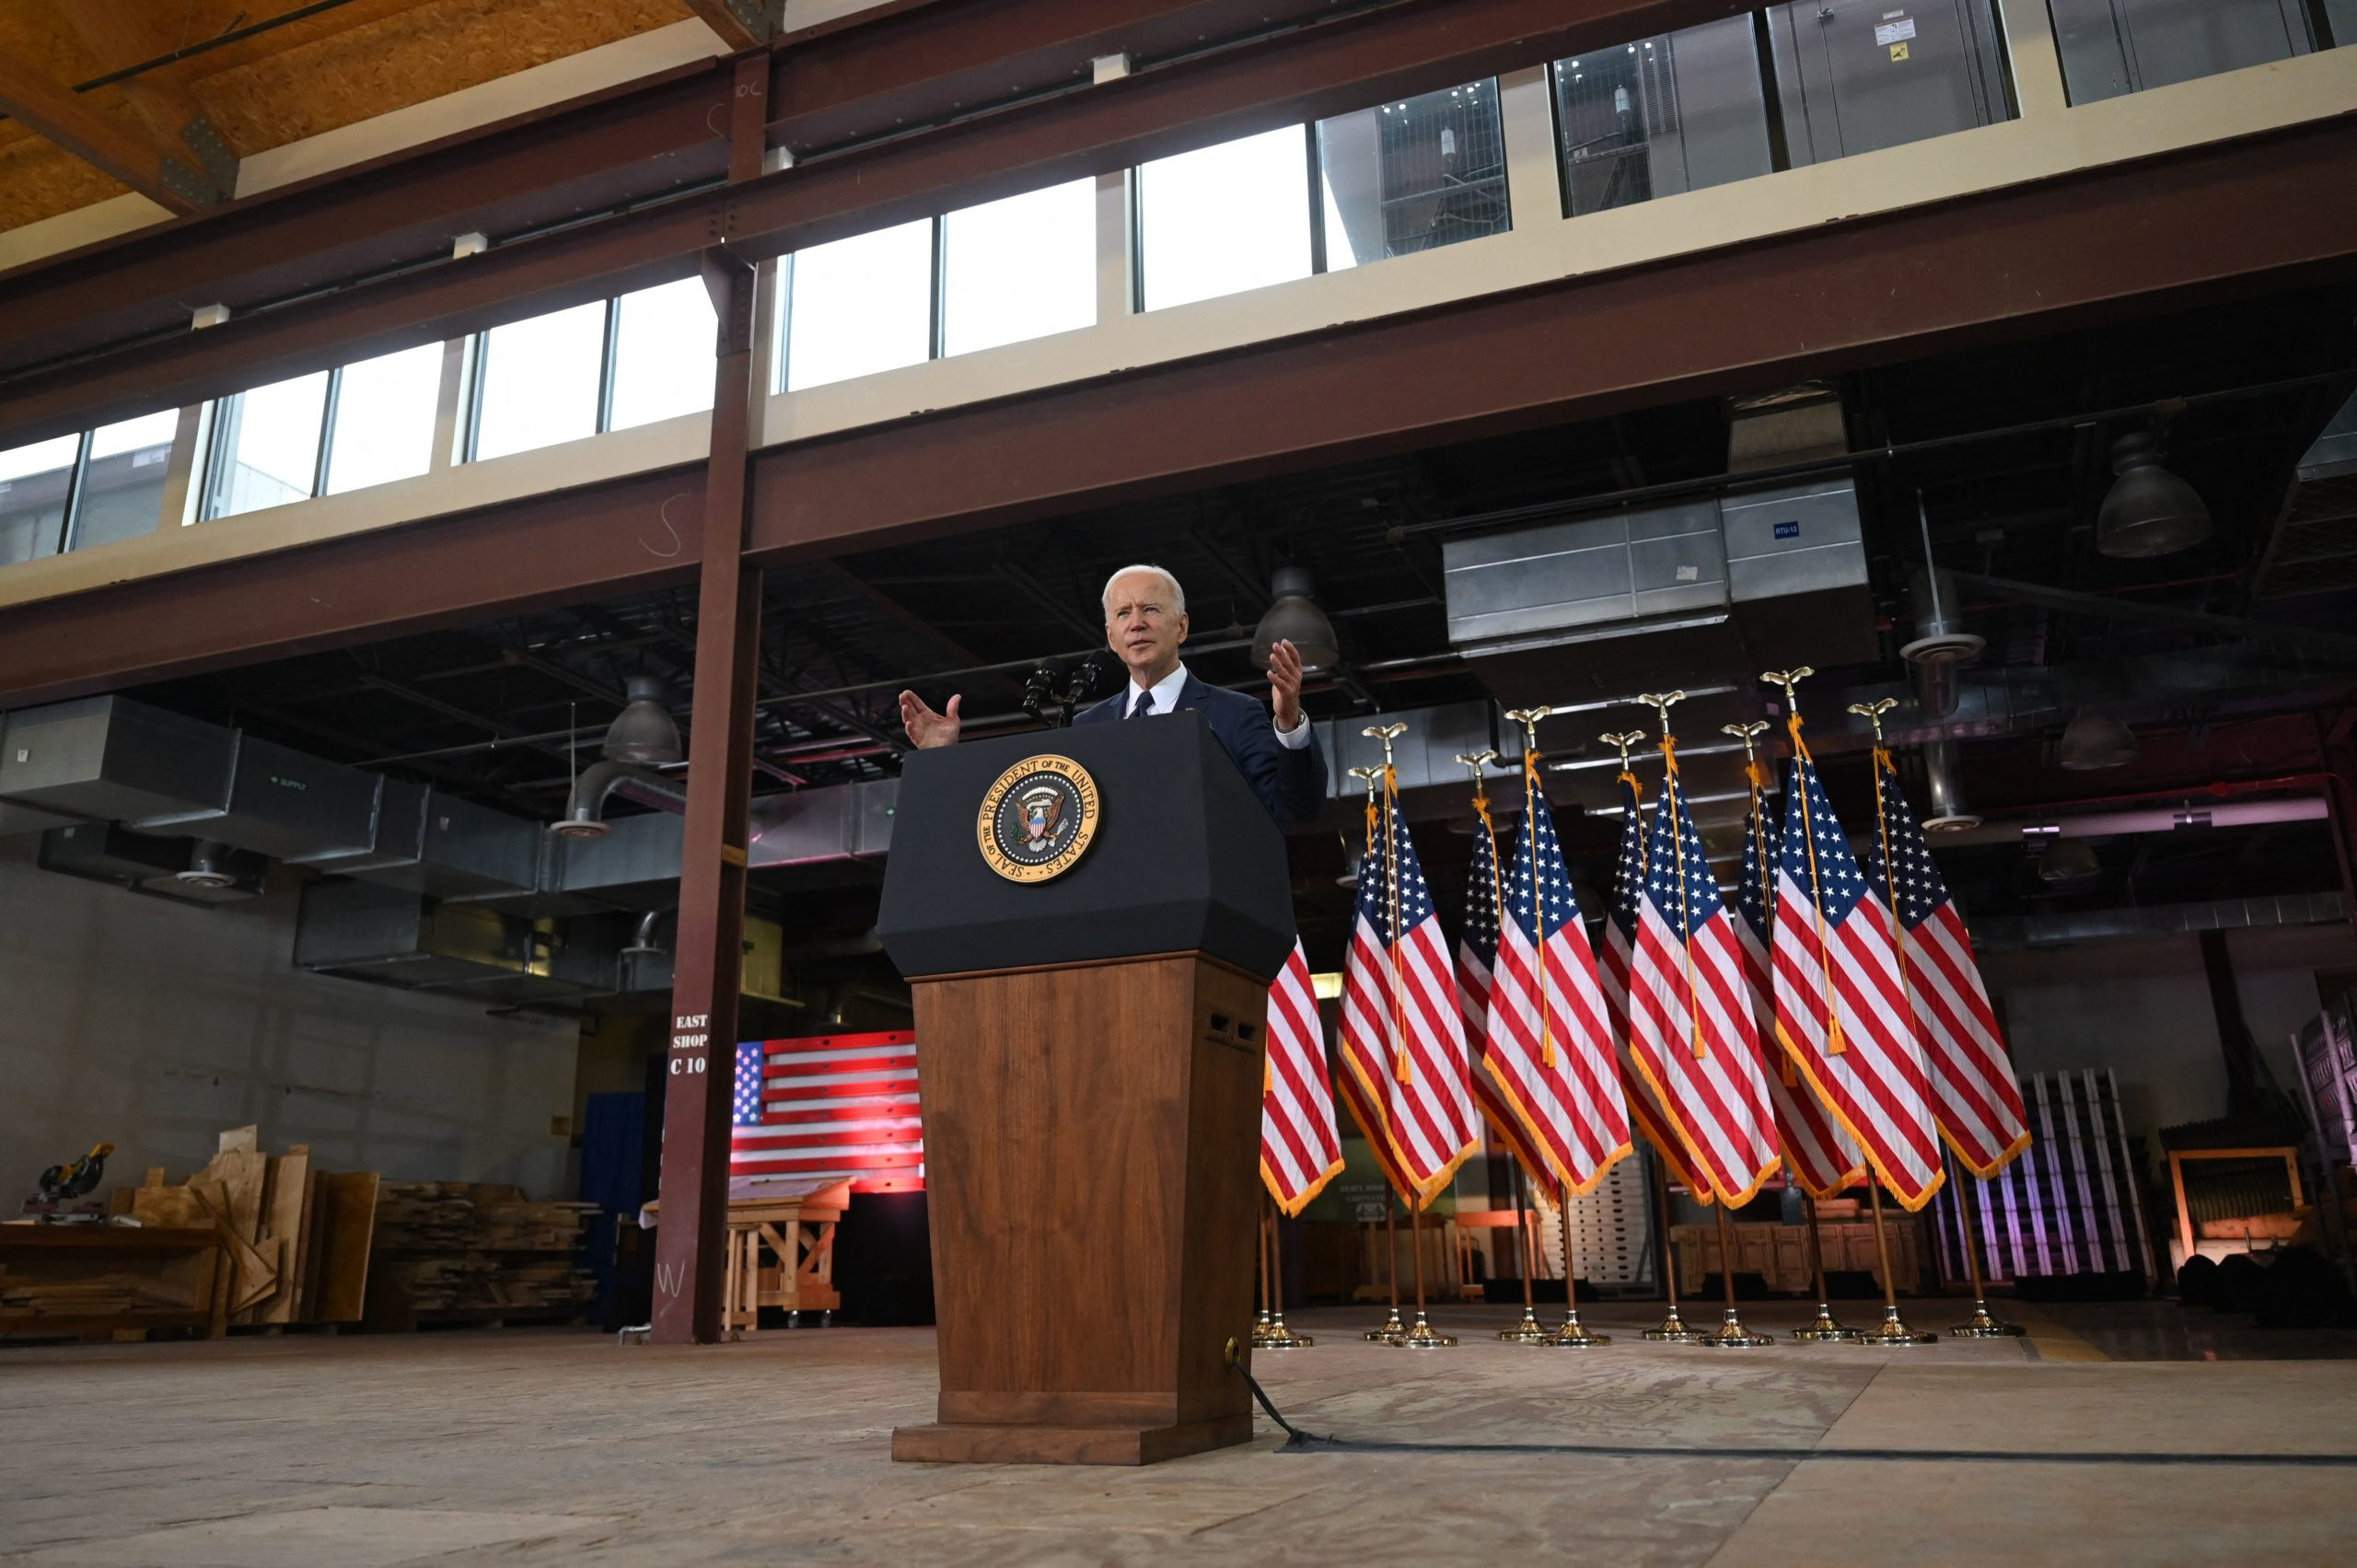 President Joe Biden announces his infrastructure plan in Pittsburgh, Pennsylvania on March 31. (Jim Watson/AFP via Getty Images)